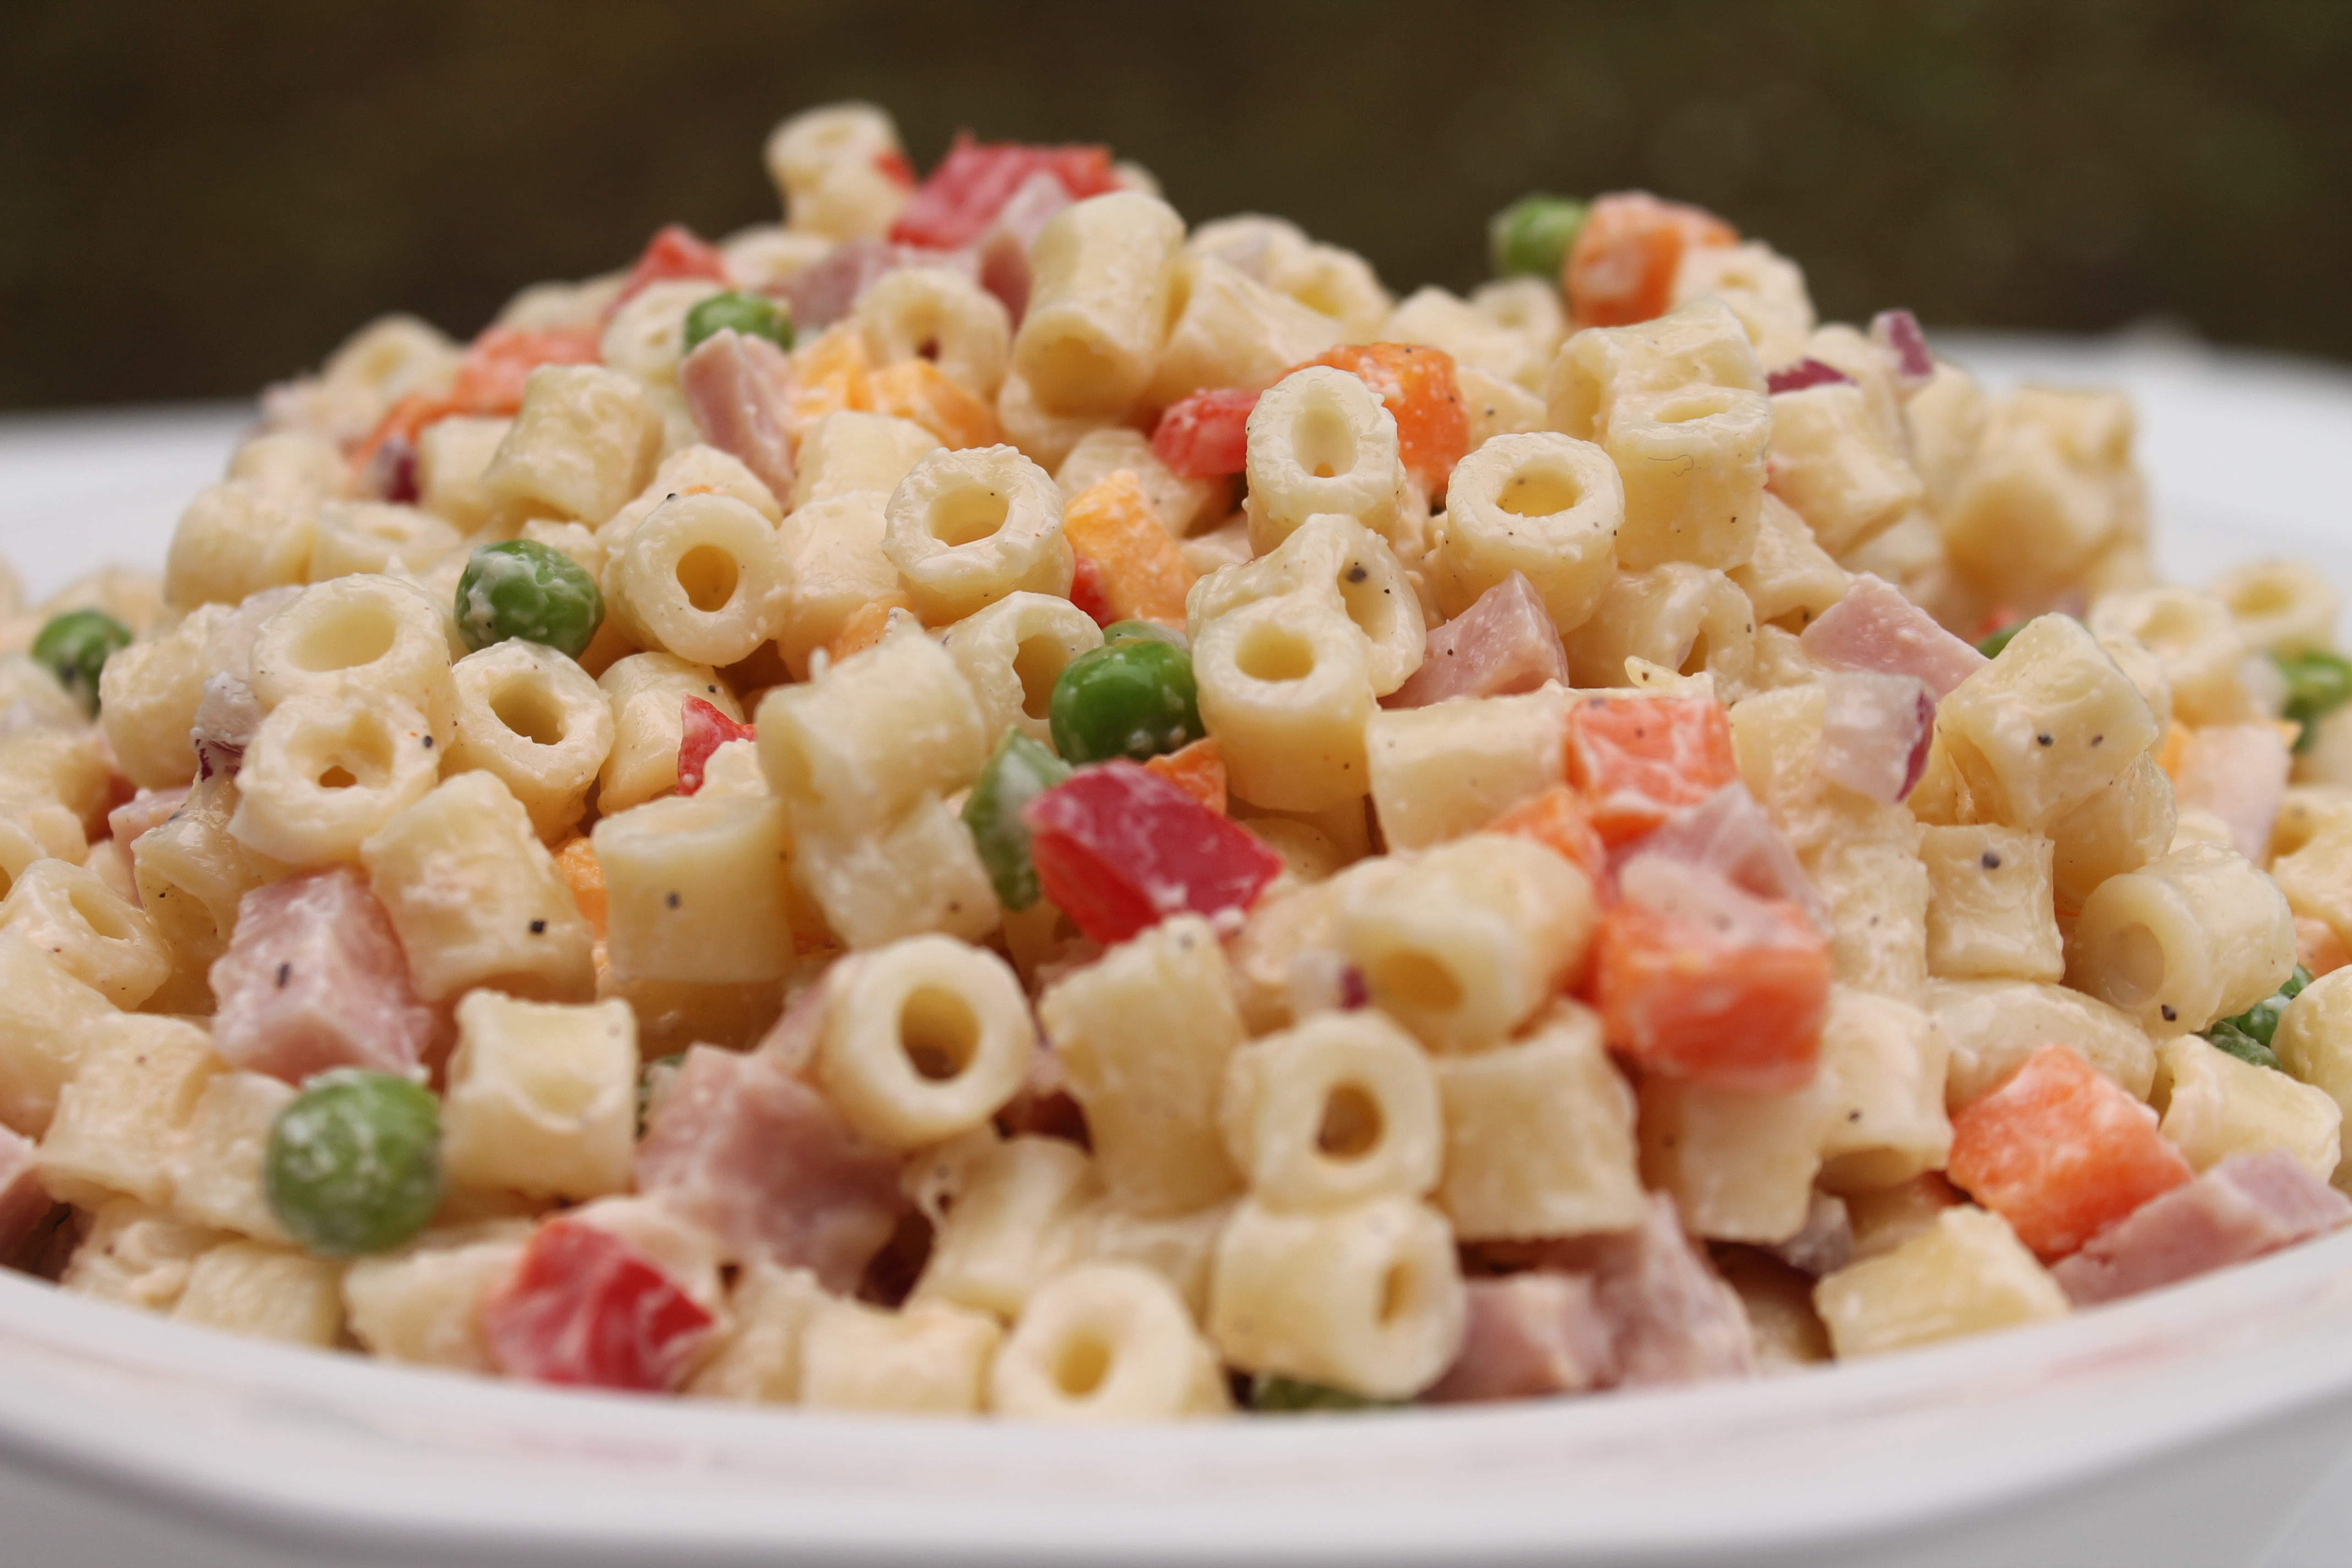 Creamy Pasta Salad loaded with vegetables, ham and cheese.